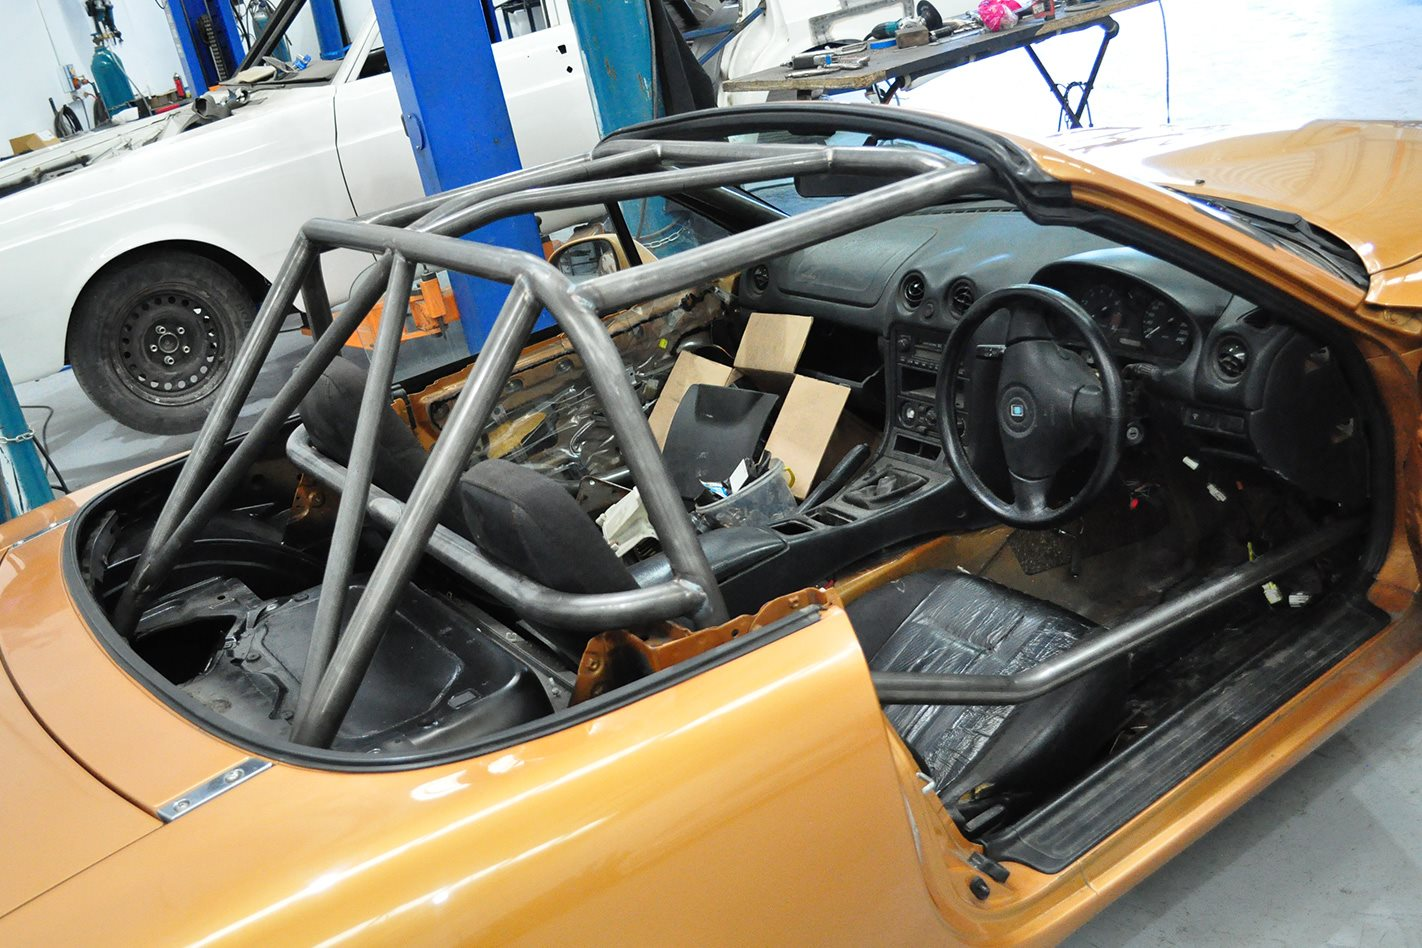 LS1 POWERED MAZDA MX5 cage